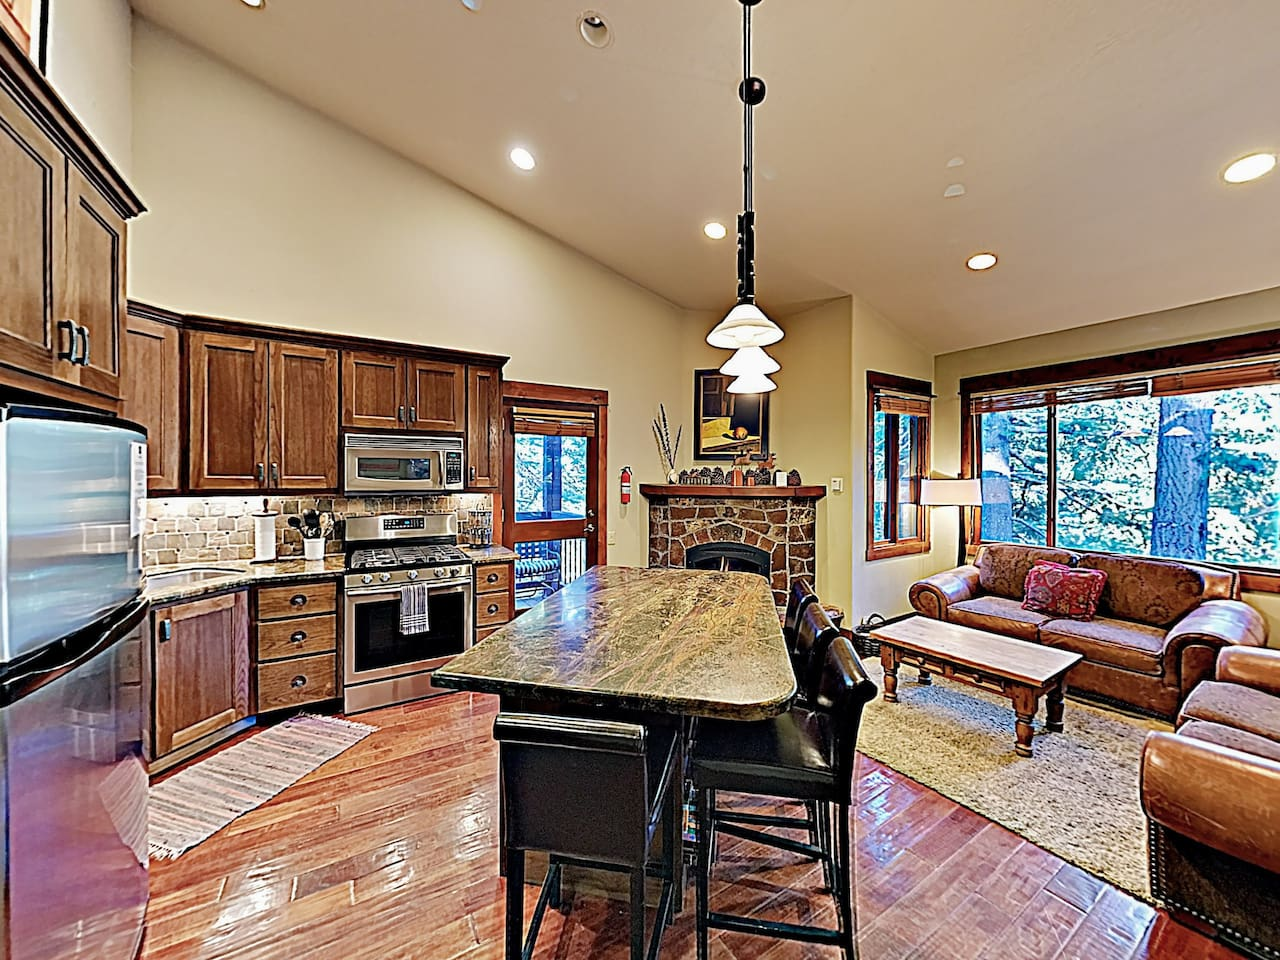 Welcome to Northstar! This condo is professionally managed by TurnKey Vacation Rentals.